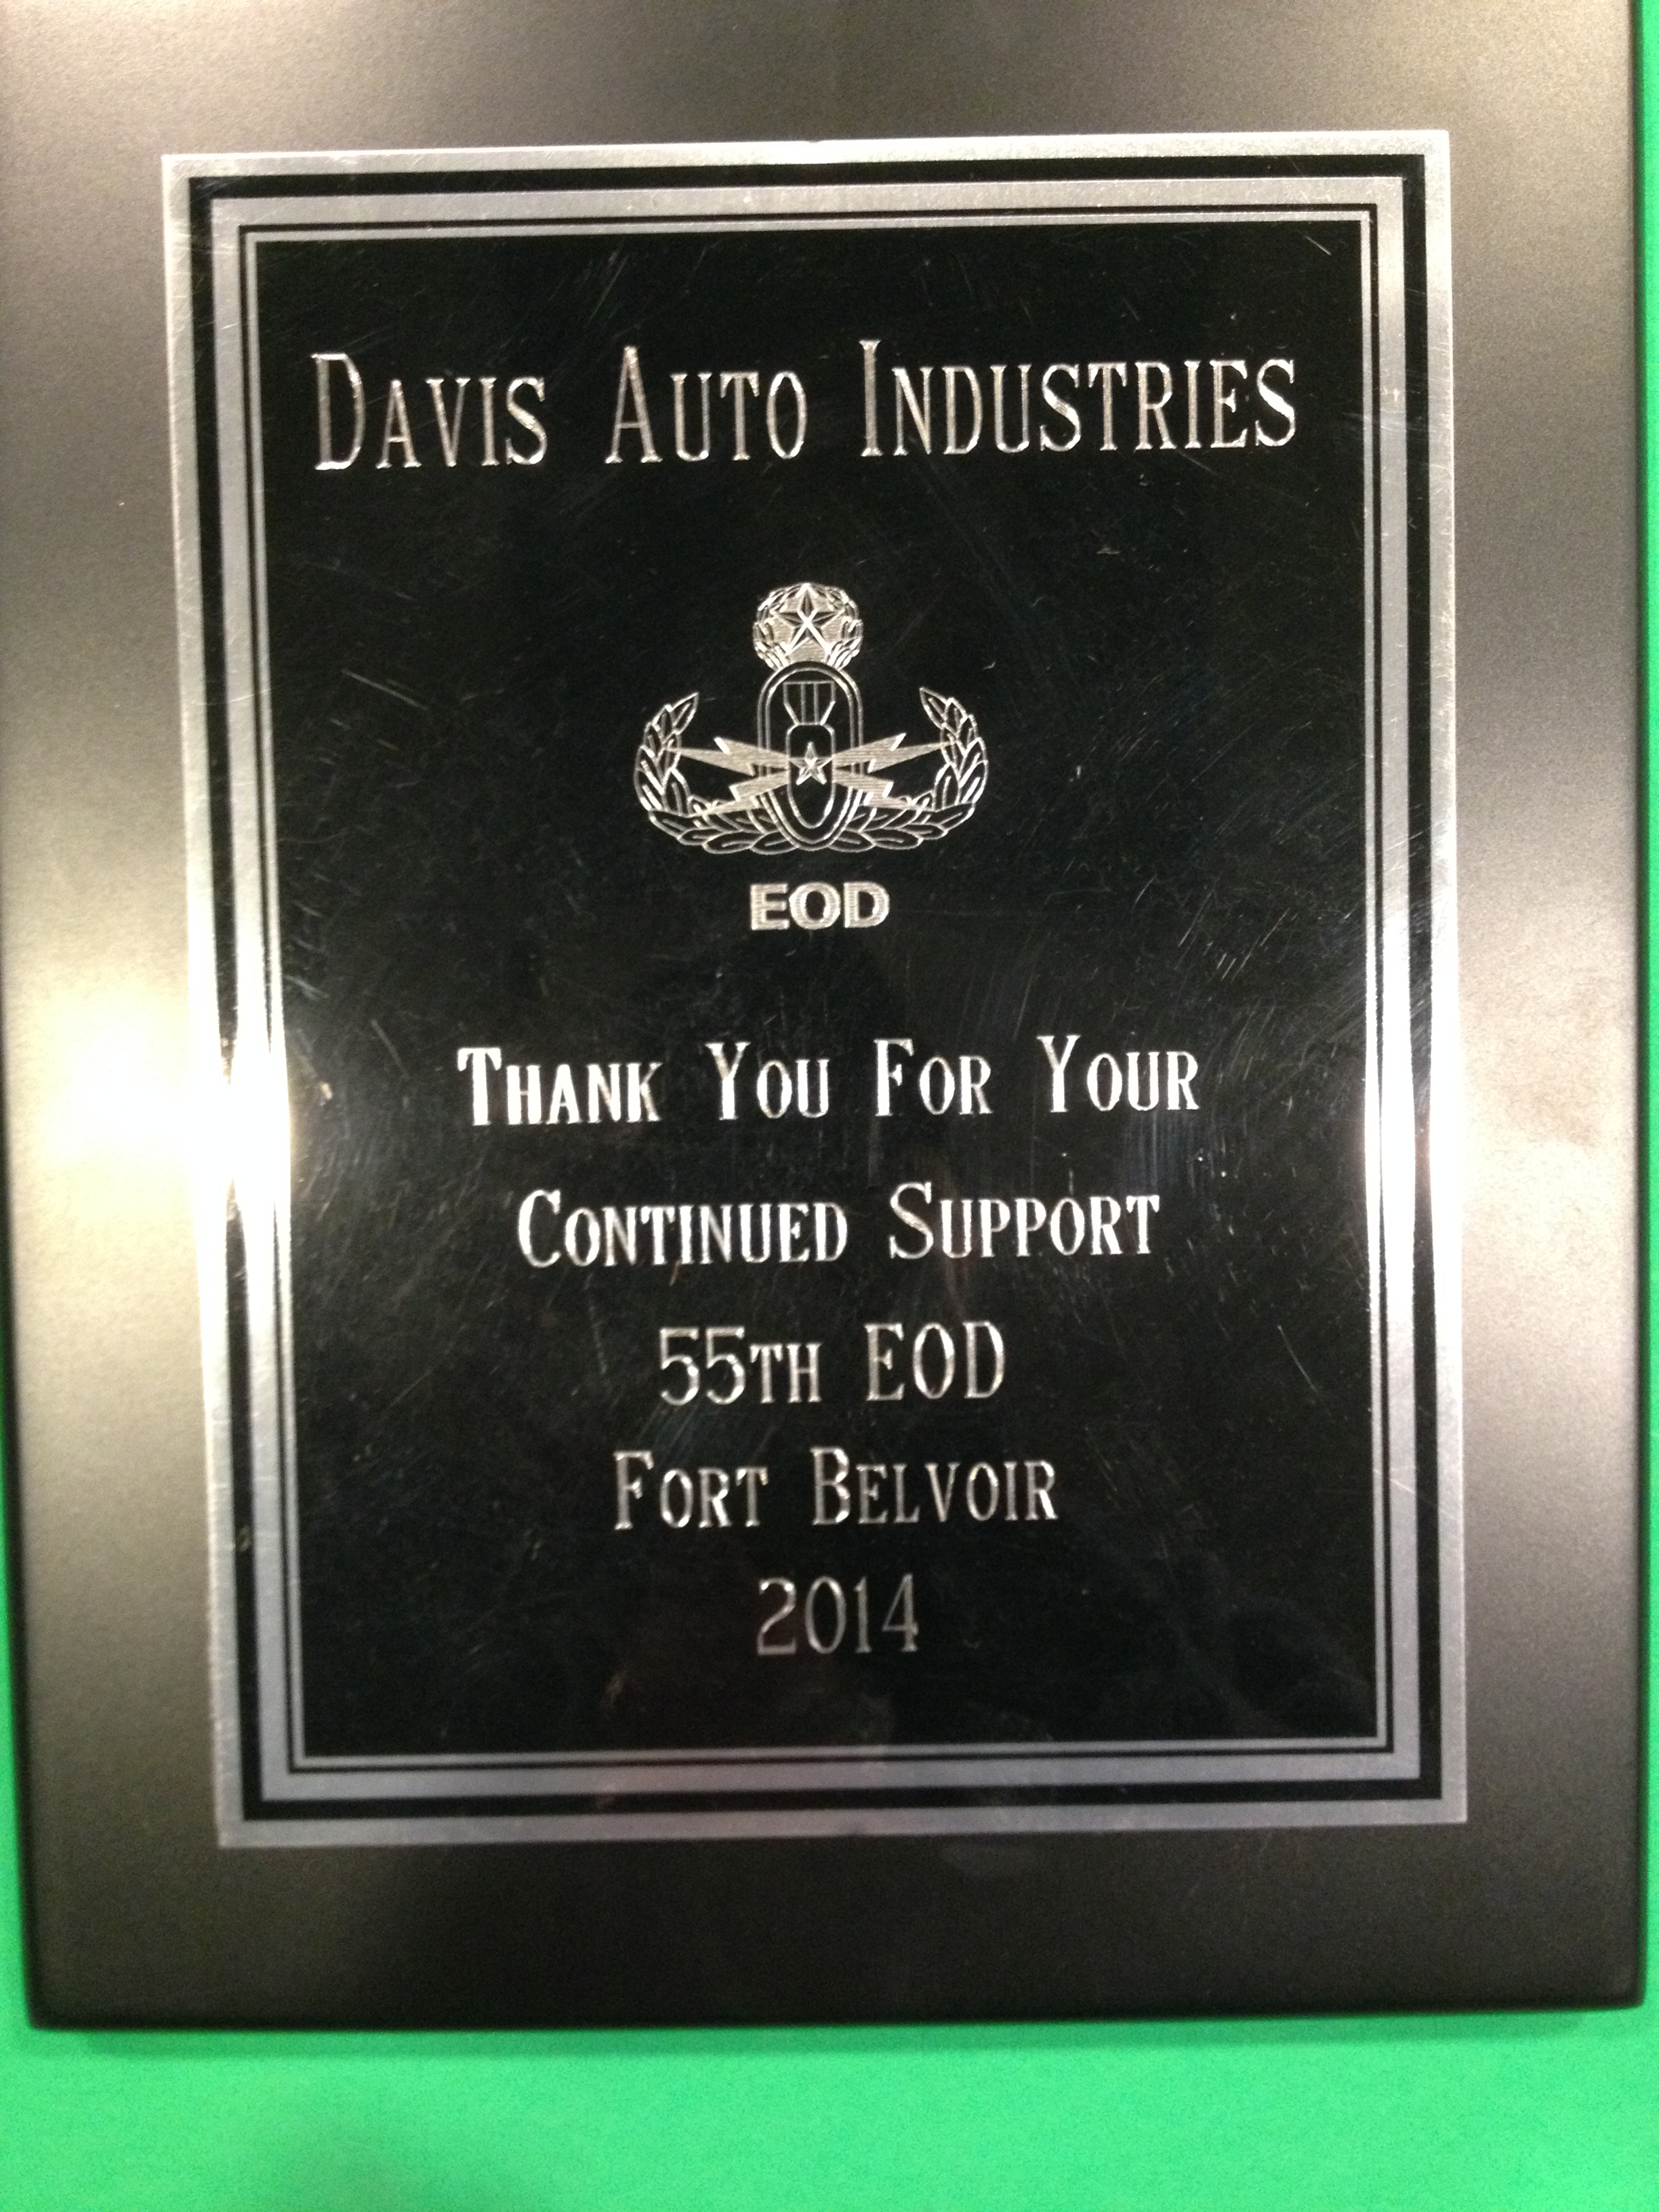 Davis Auto Industries